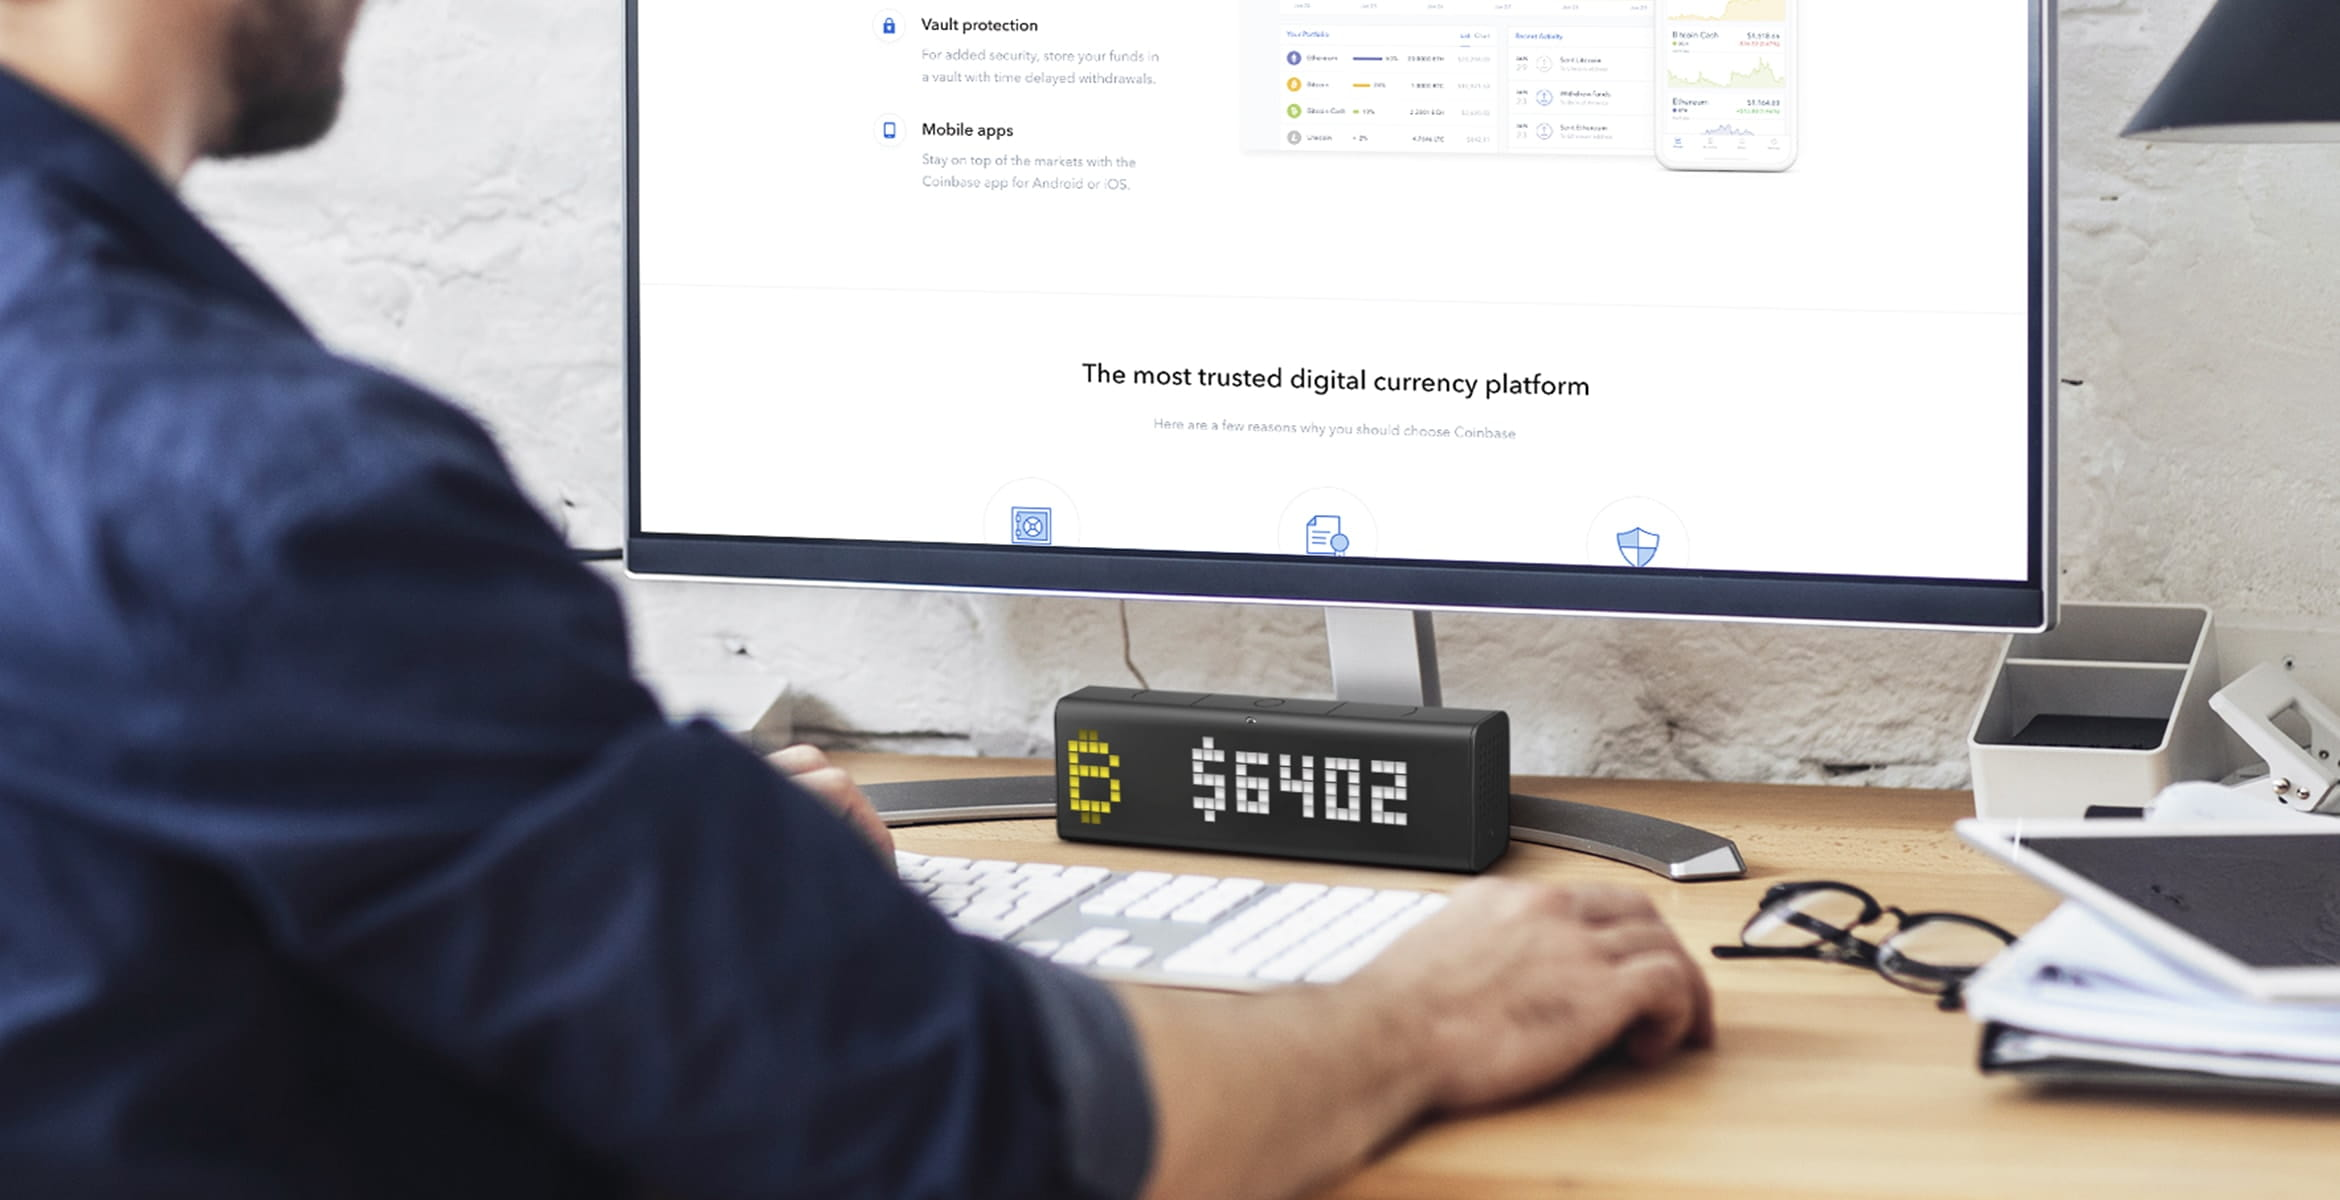 LaMetric Time digital clock complements the desk setup and displays bitcoin rate